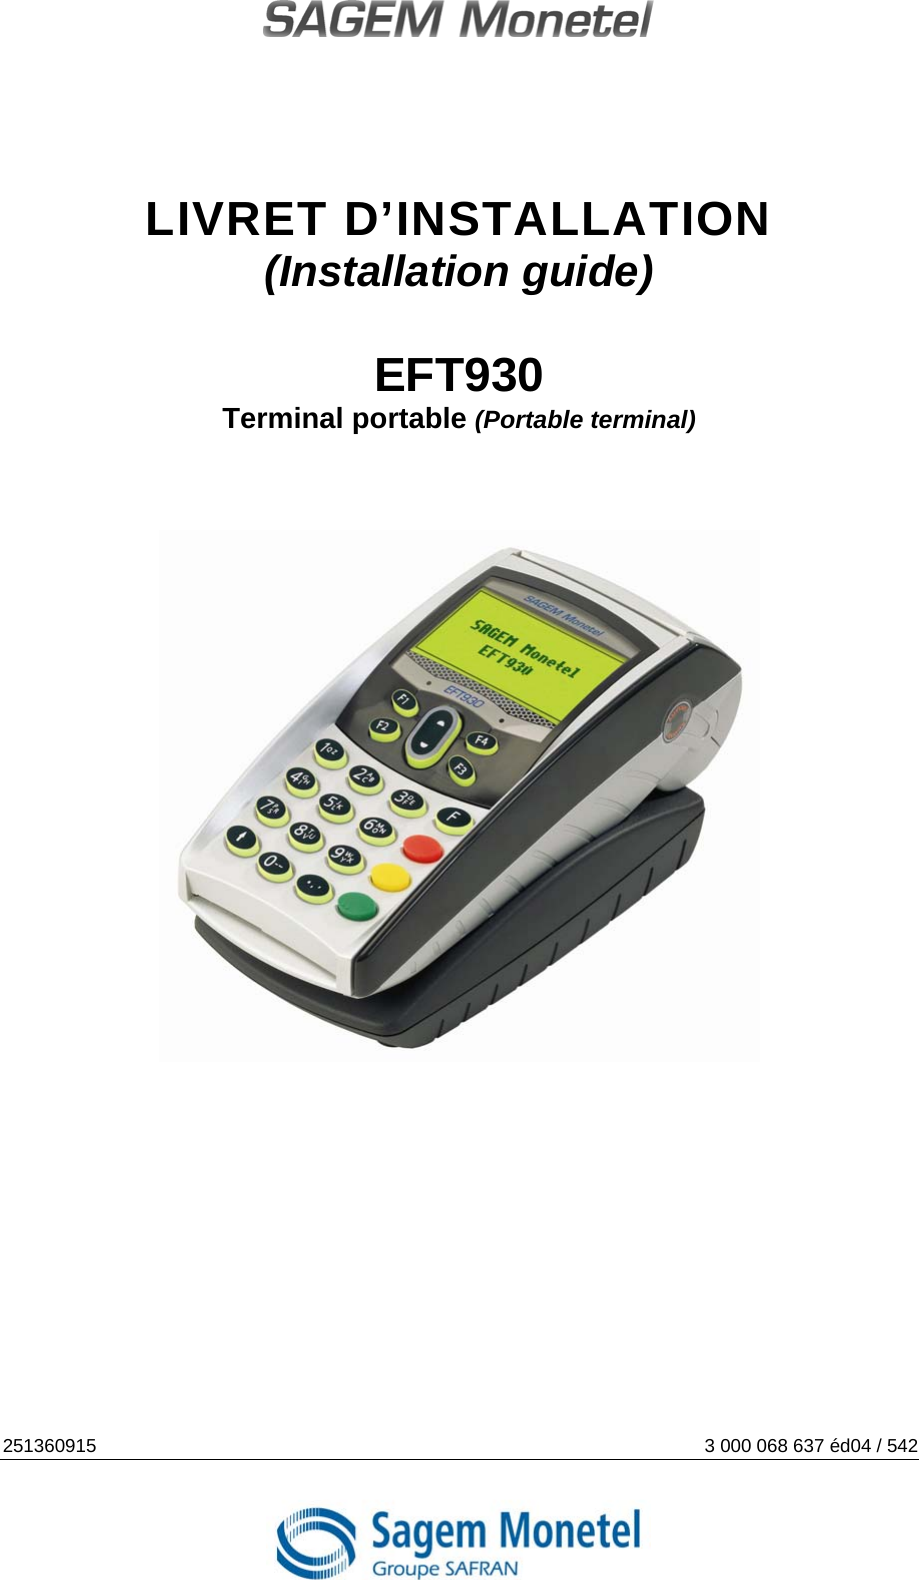 Sagem monetel eft930 hand held payment terminal user manual eft20p.